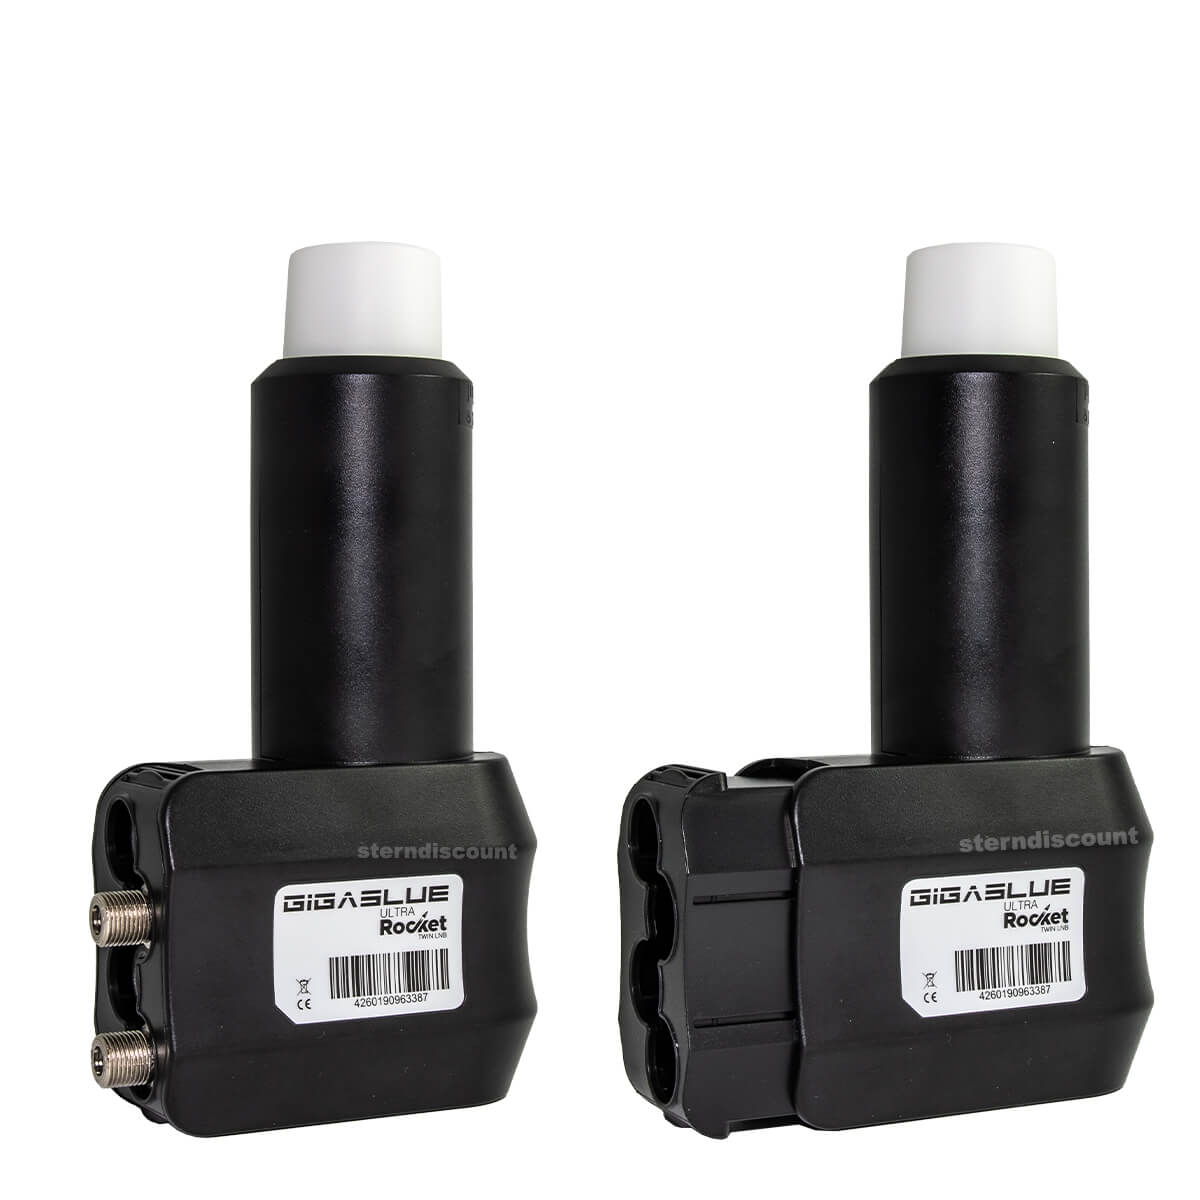 Gigablue-Ultra-Rocket-Twin-LNB-0-1db